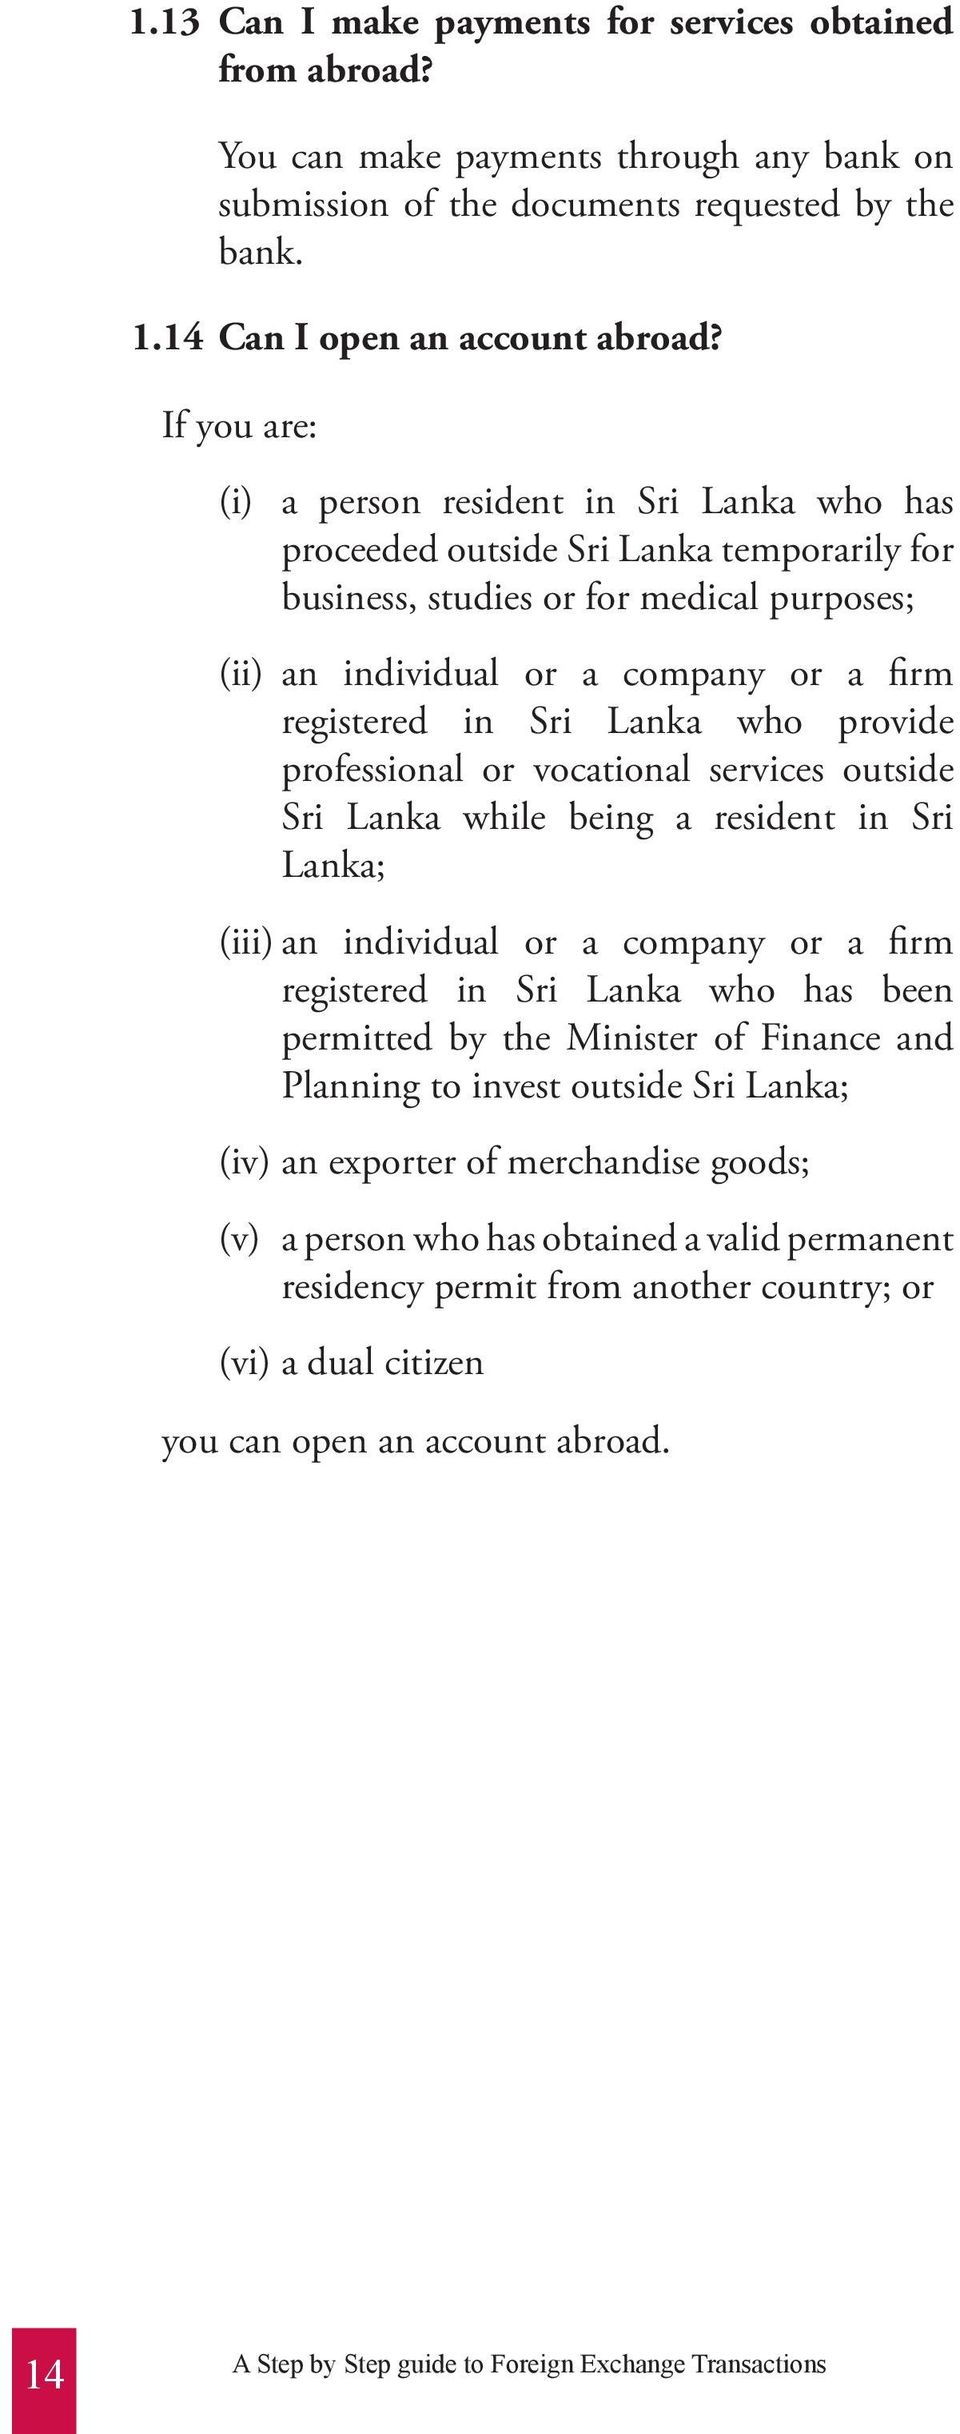 Sri Lanka who provide professional or vocational services outside Sri Lanka while being a resident in Sri Lanka; (iii) an individual or a company or a firm registered in Sri Lanka who has been